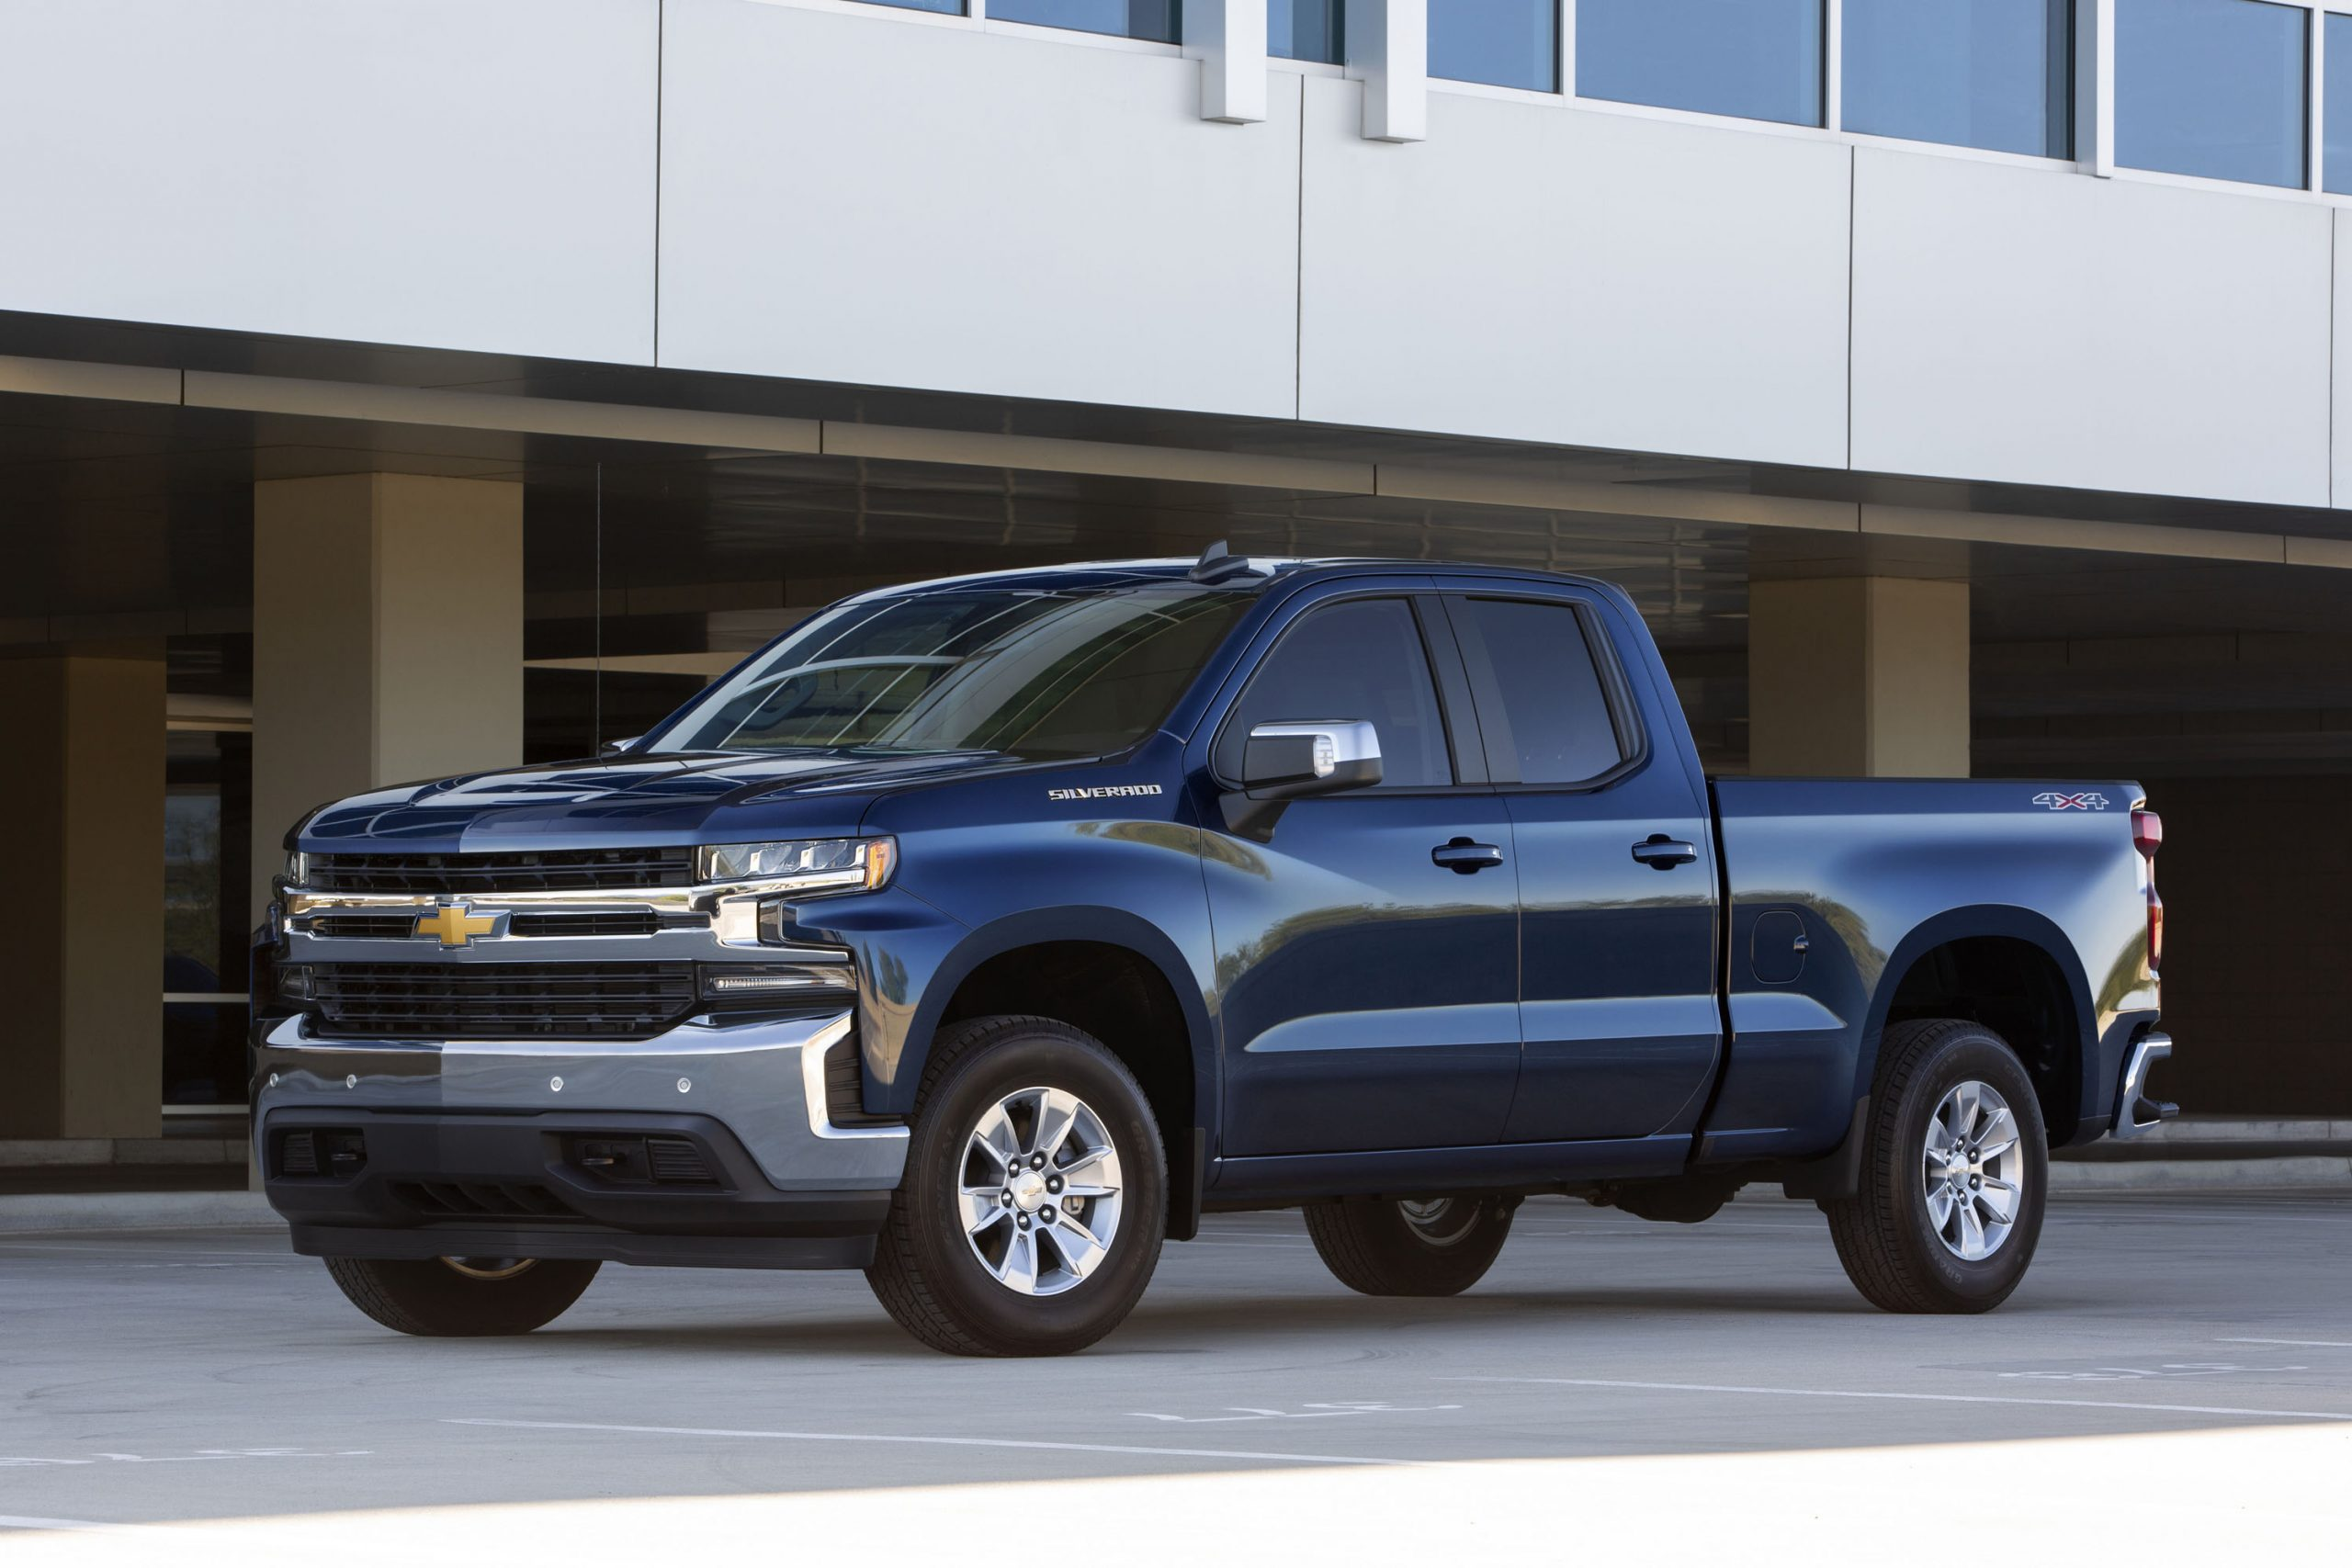 Gm Dials Back Its Free New Car Maintenance 2021 Chevrolet Silverado 1500 Oil Capacity, Problems, Packages